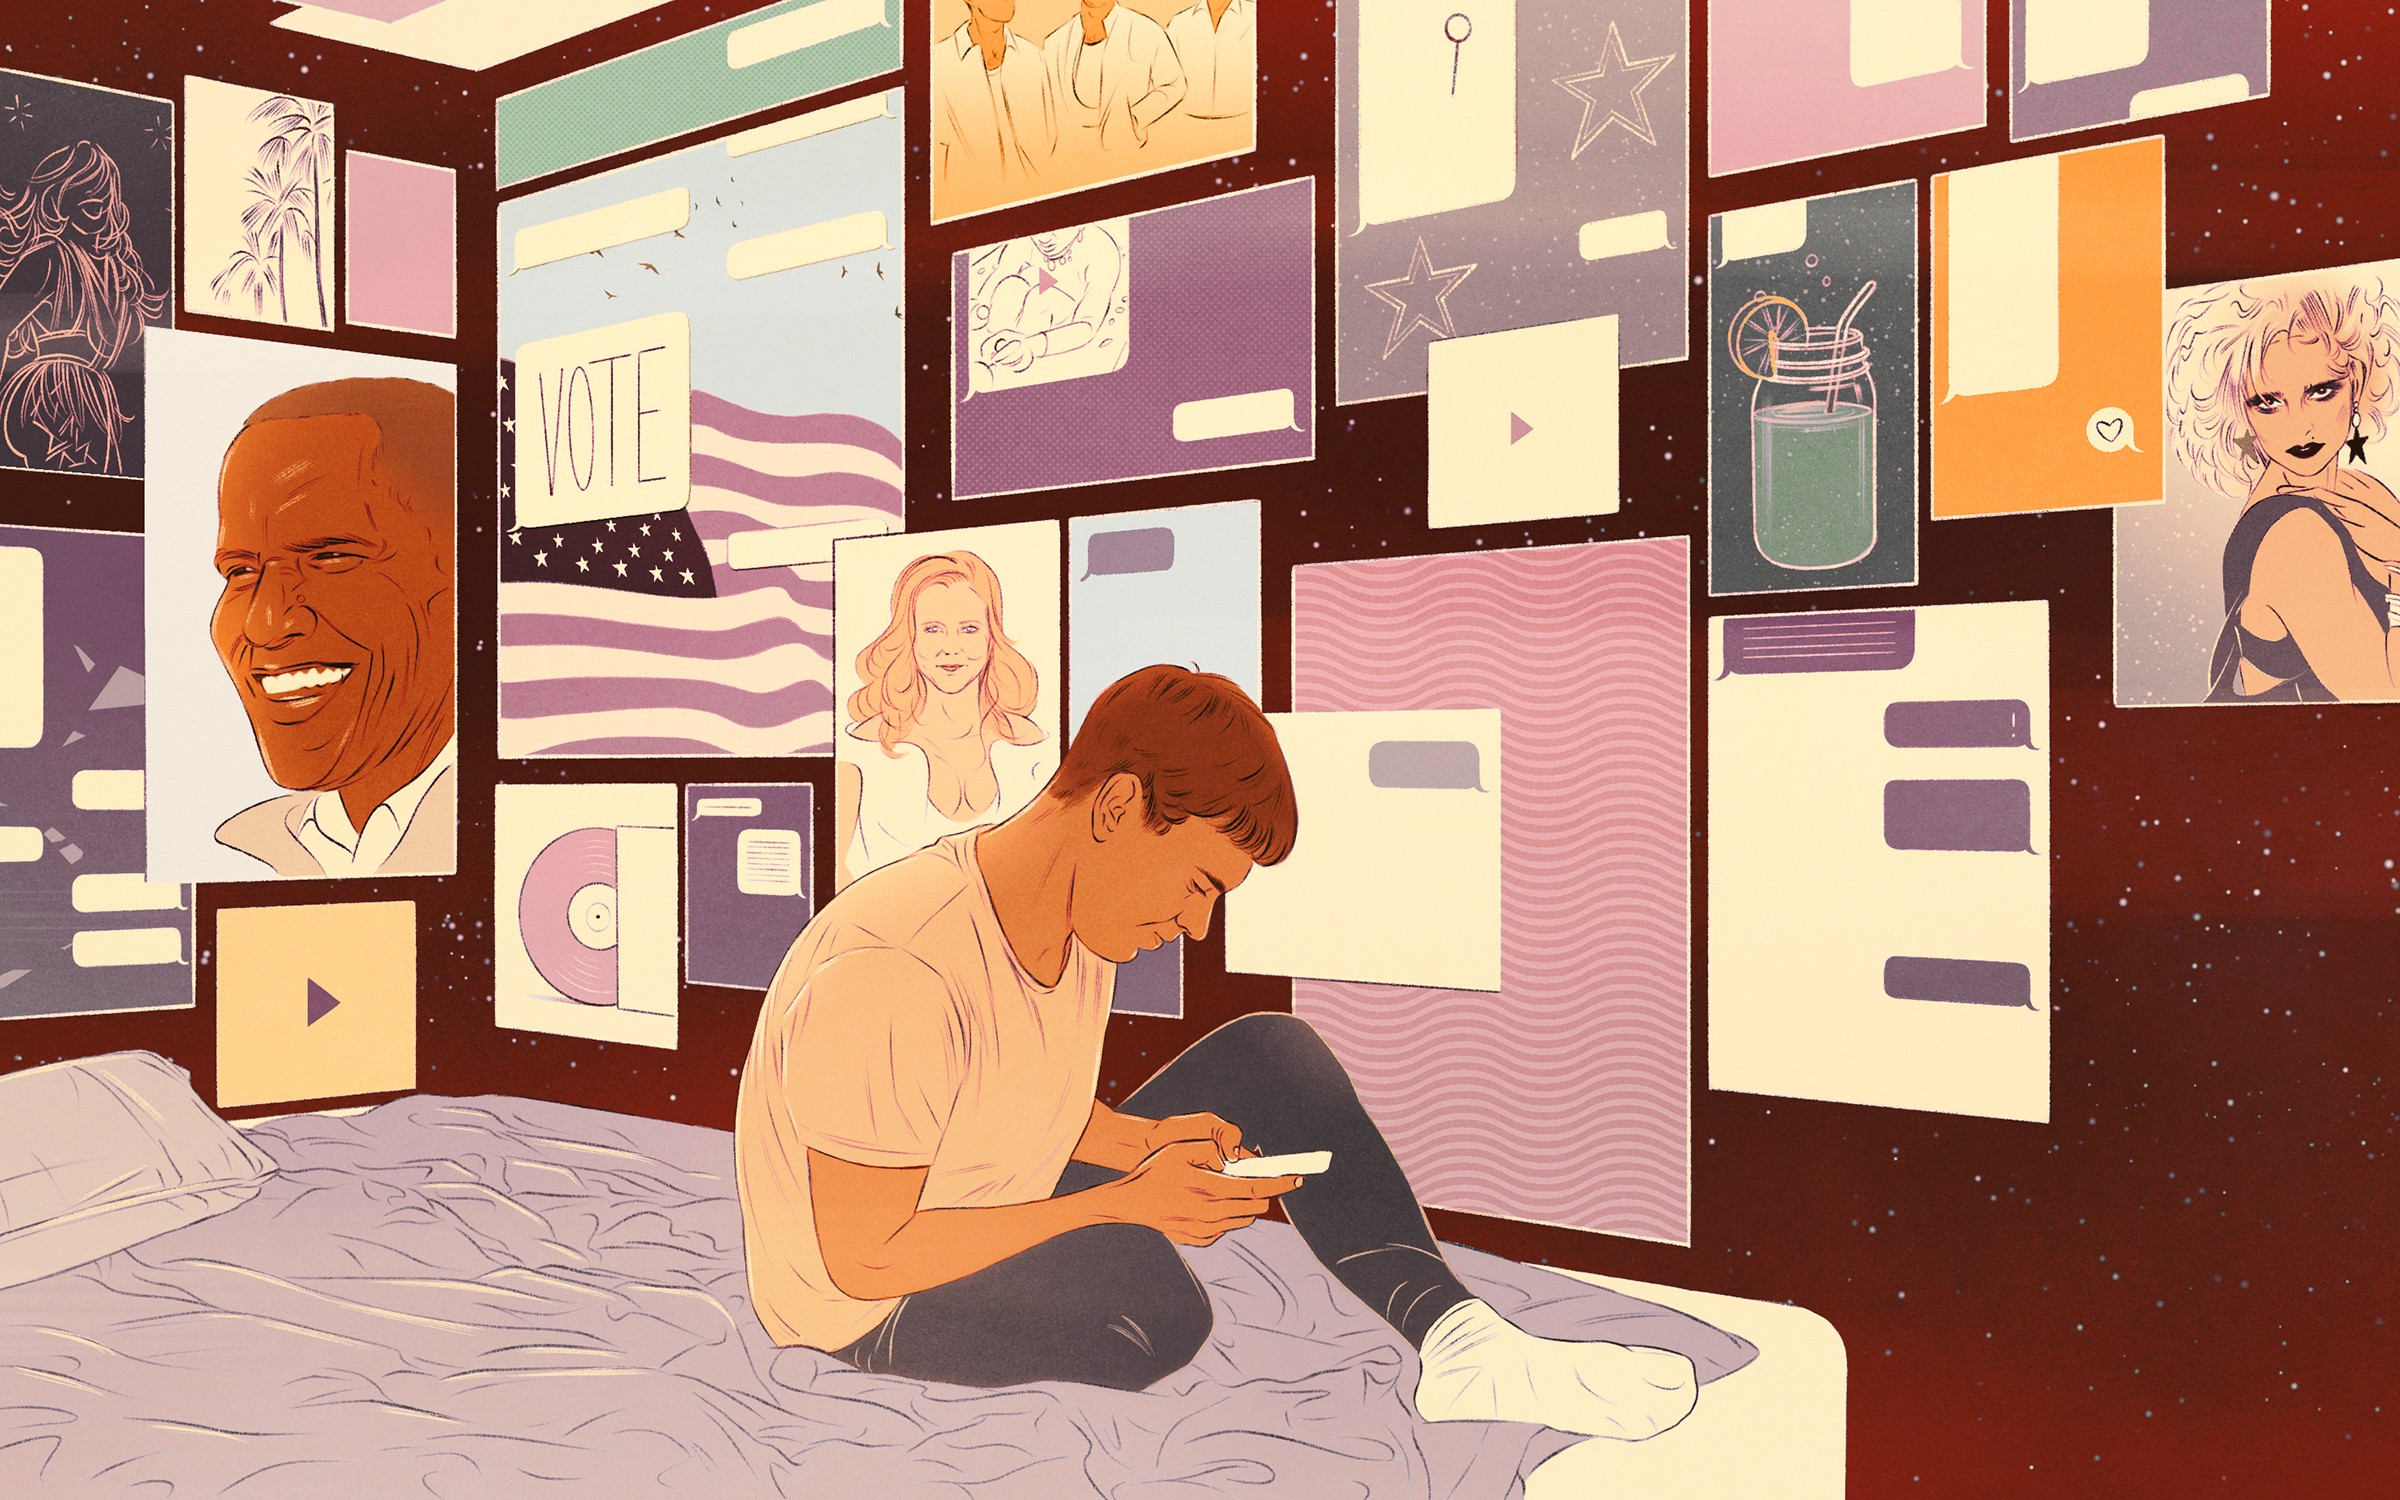 Illustration of boy sitting on his bed looking at his phone. A wall of posters featuring an American flag, celebrities, stars, and drinks are behind him.